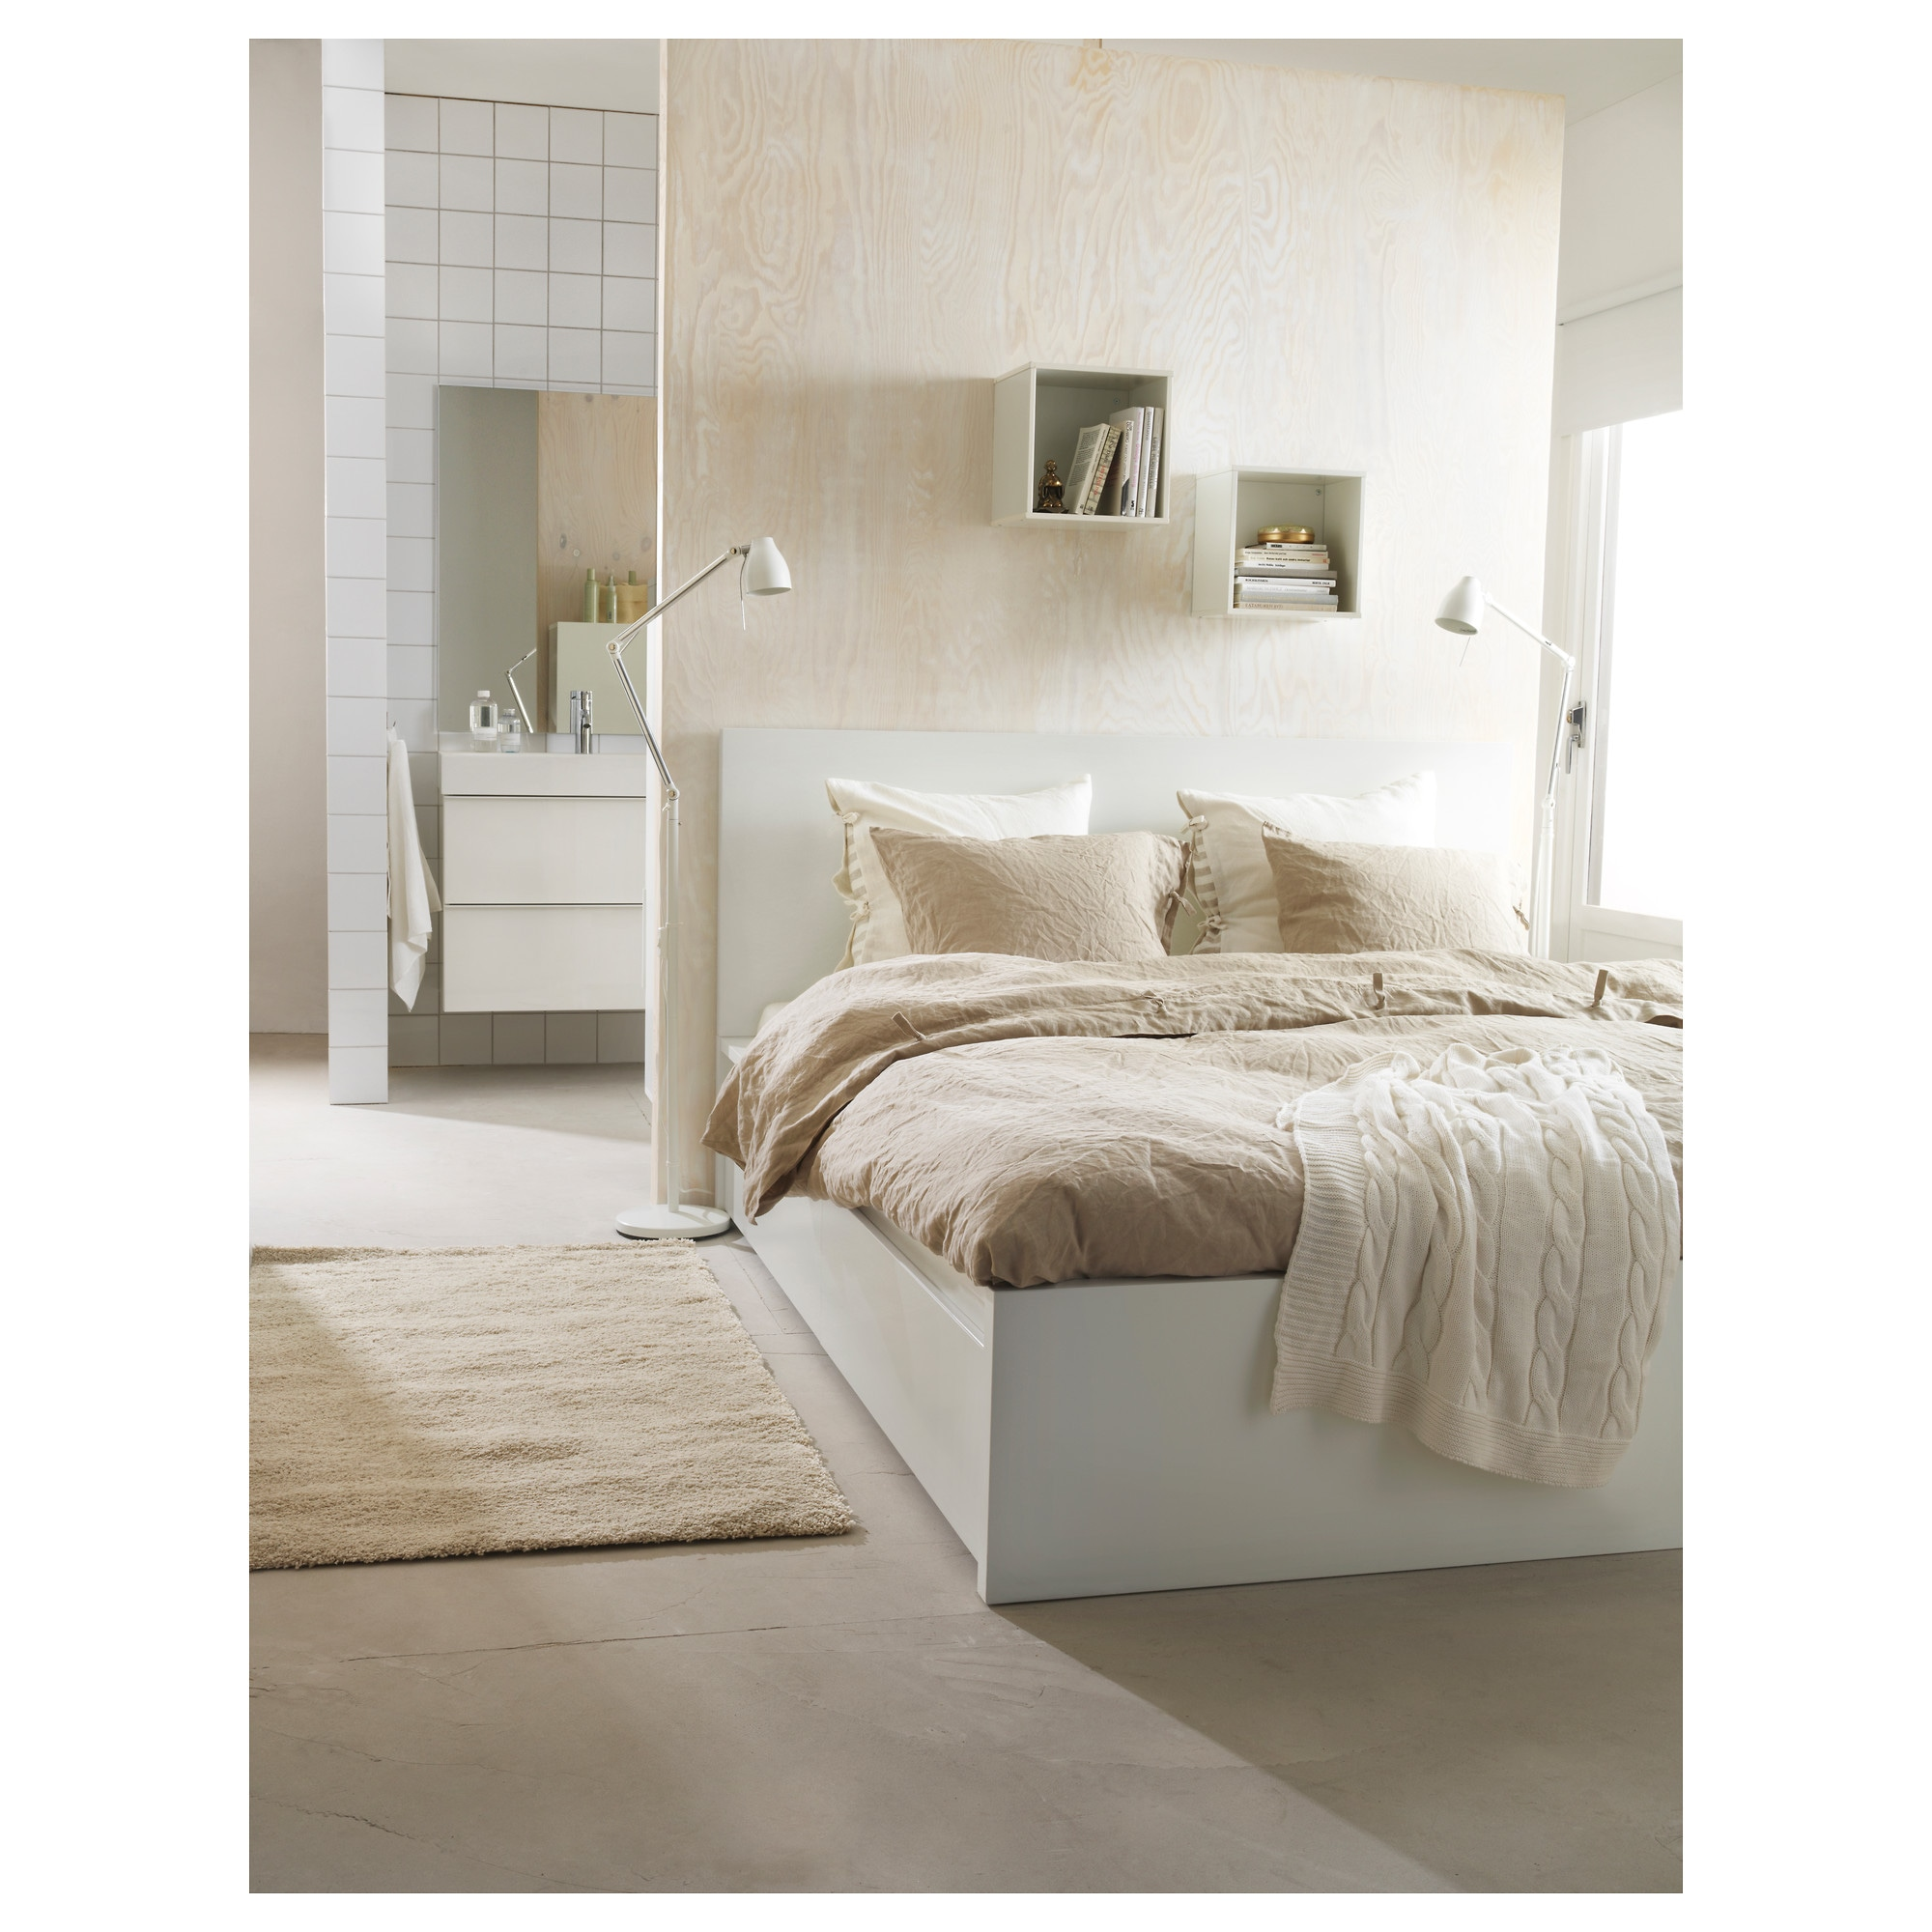 schlafzimmer deko diy inspiration f r die gestaltung der besten r ume. Black Bedroom Furniture Sets. Home Design Ideas